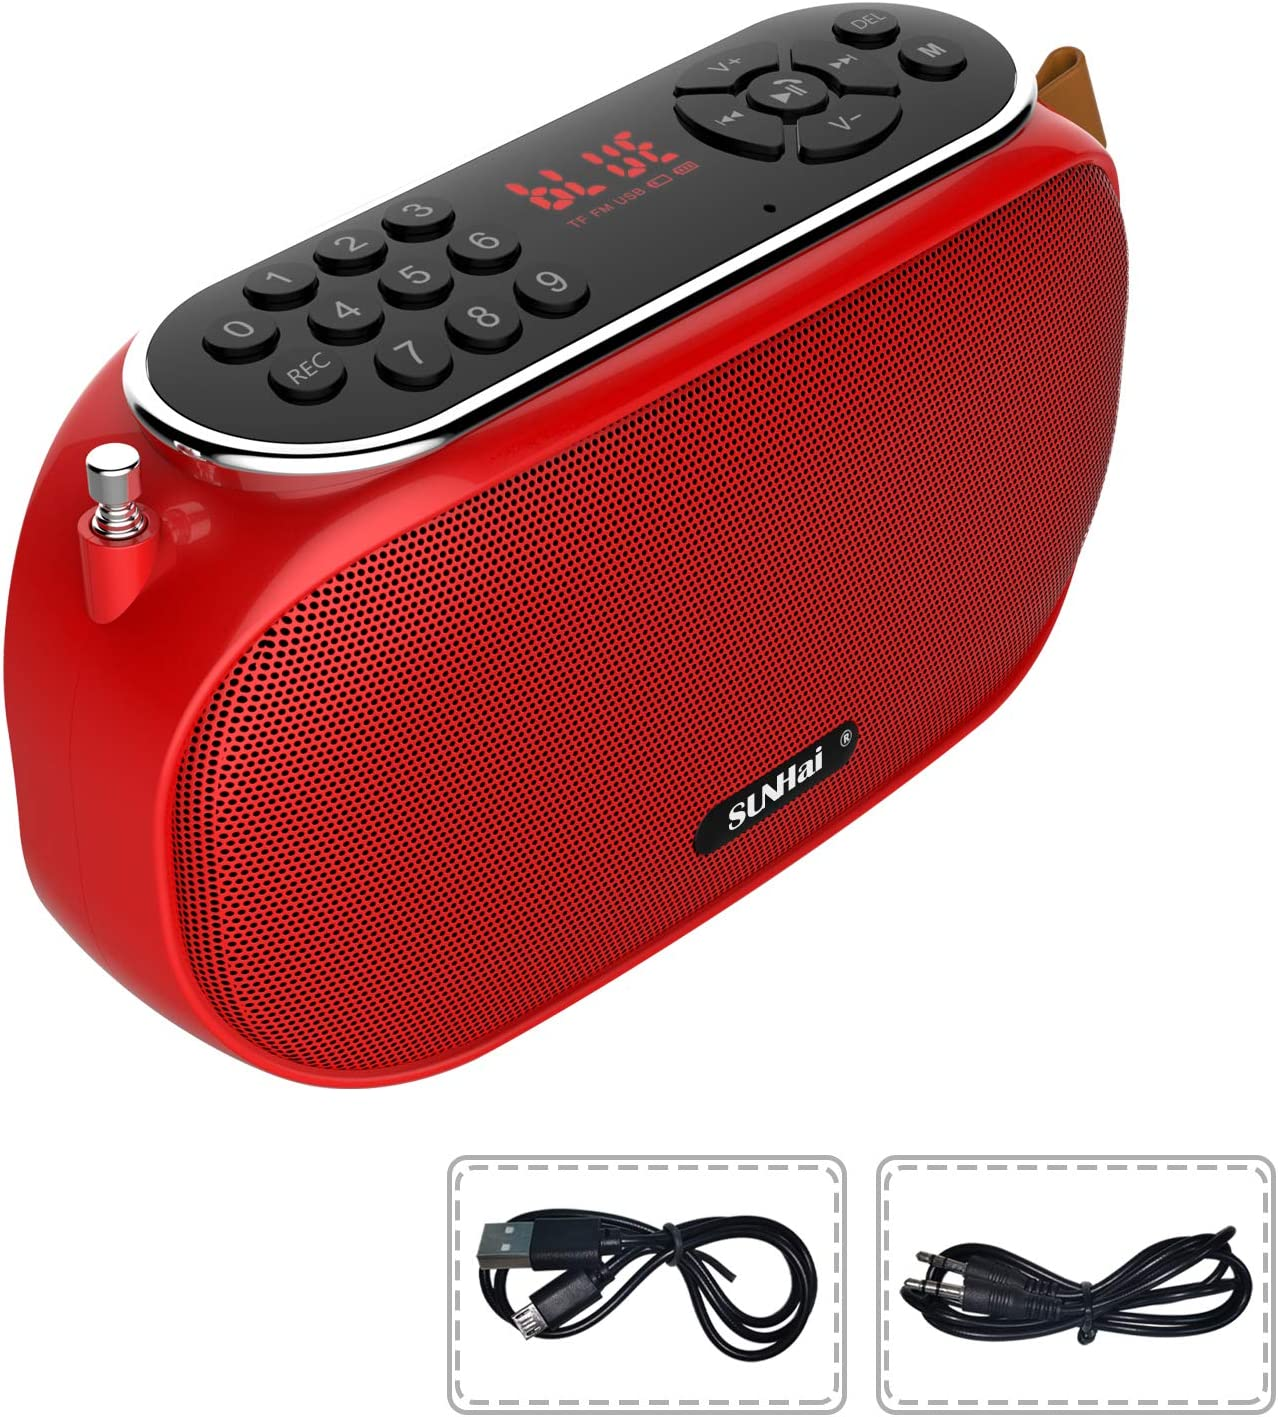 SUNhai Bluetooth Speaker Portable Wireless Radio Desktop Speaker J19 with HD Sound,FM,TF,USB Player,USB Charge,AUX Input,Built-in Microphone,Aux Cable,Support Hands-Free Call for Outdoors,Party-Red